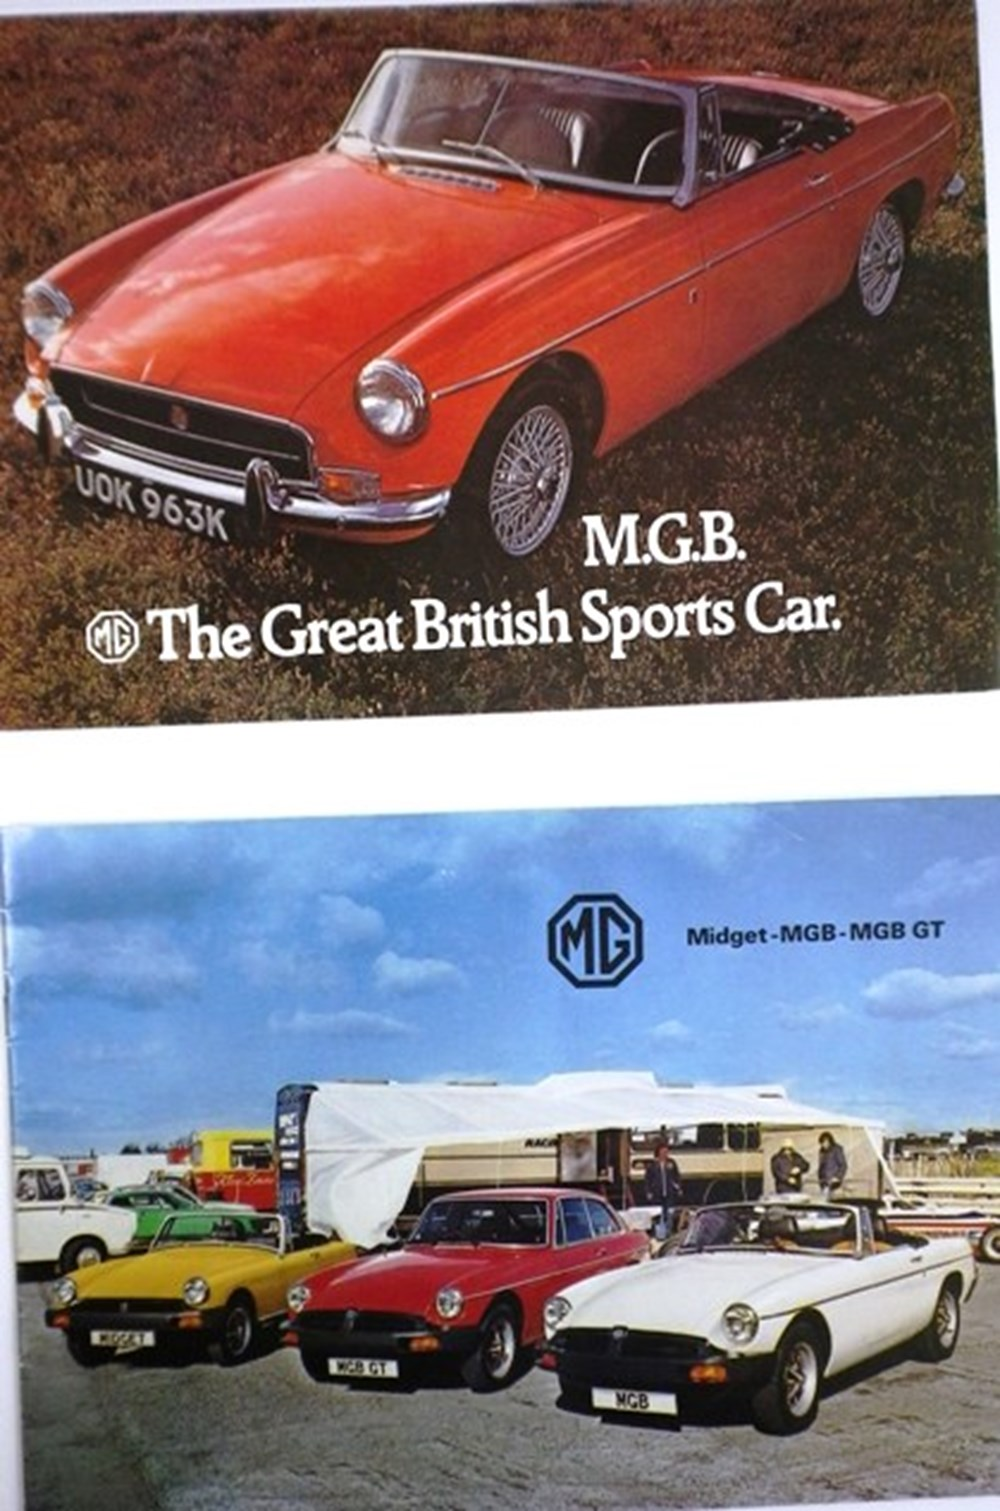 Lot 016 - MG related material